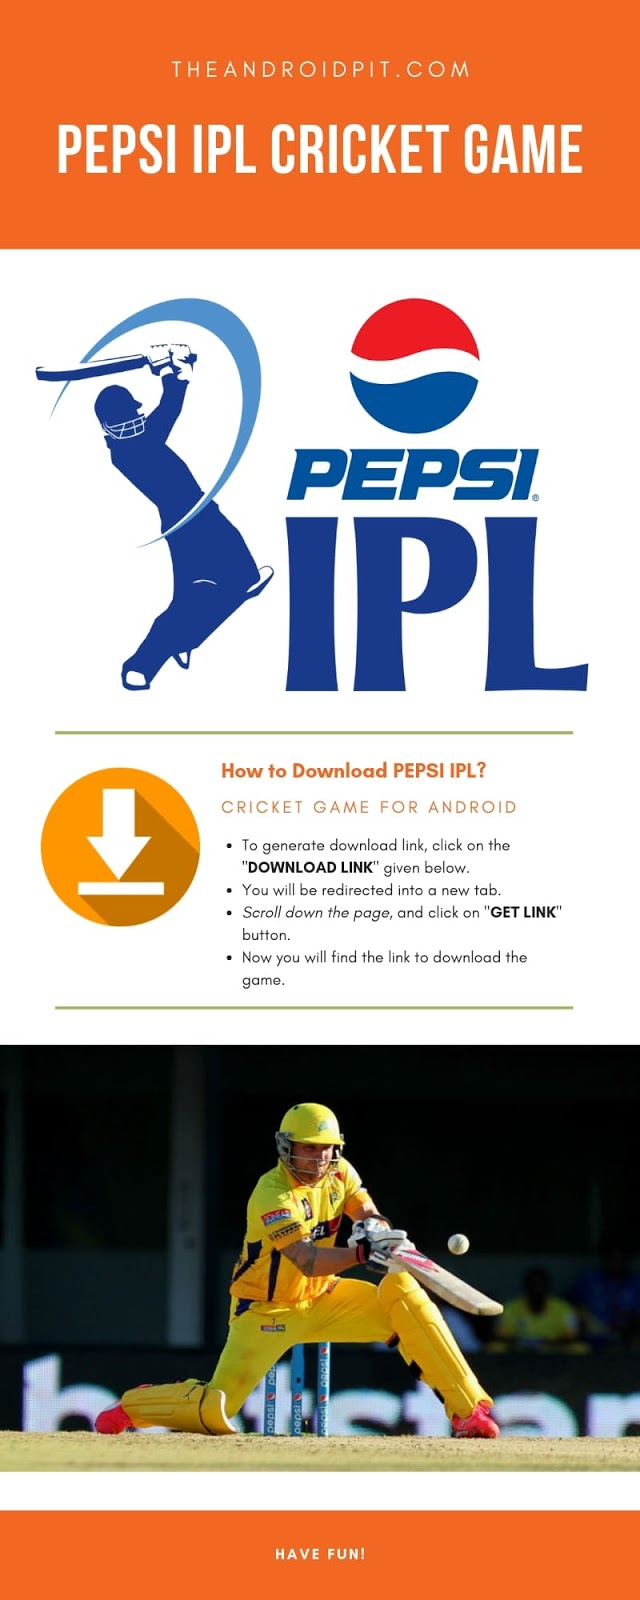 Pepsi IPL Cricket Game for Android, Pepsi IPL game, How to download pepsi ipl game